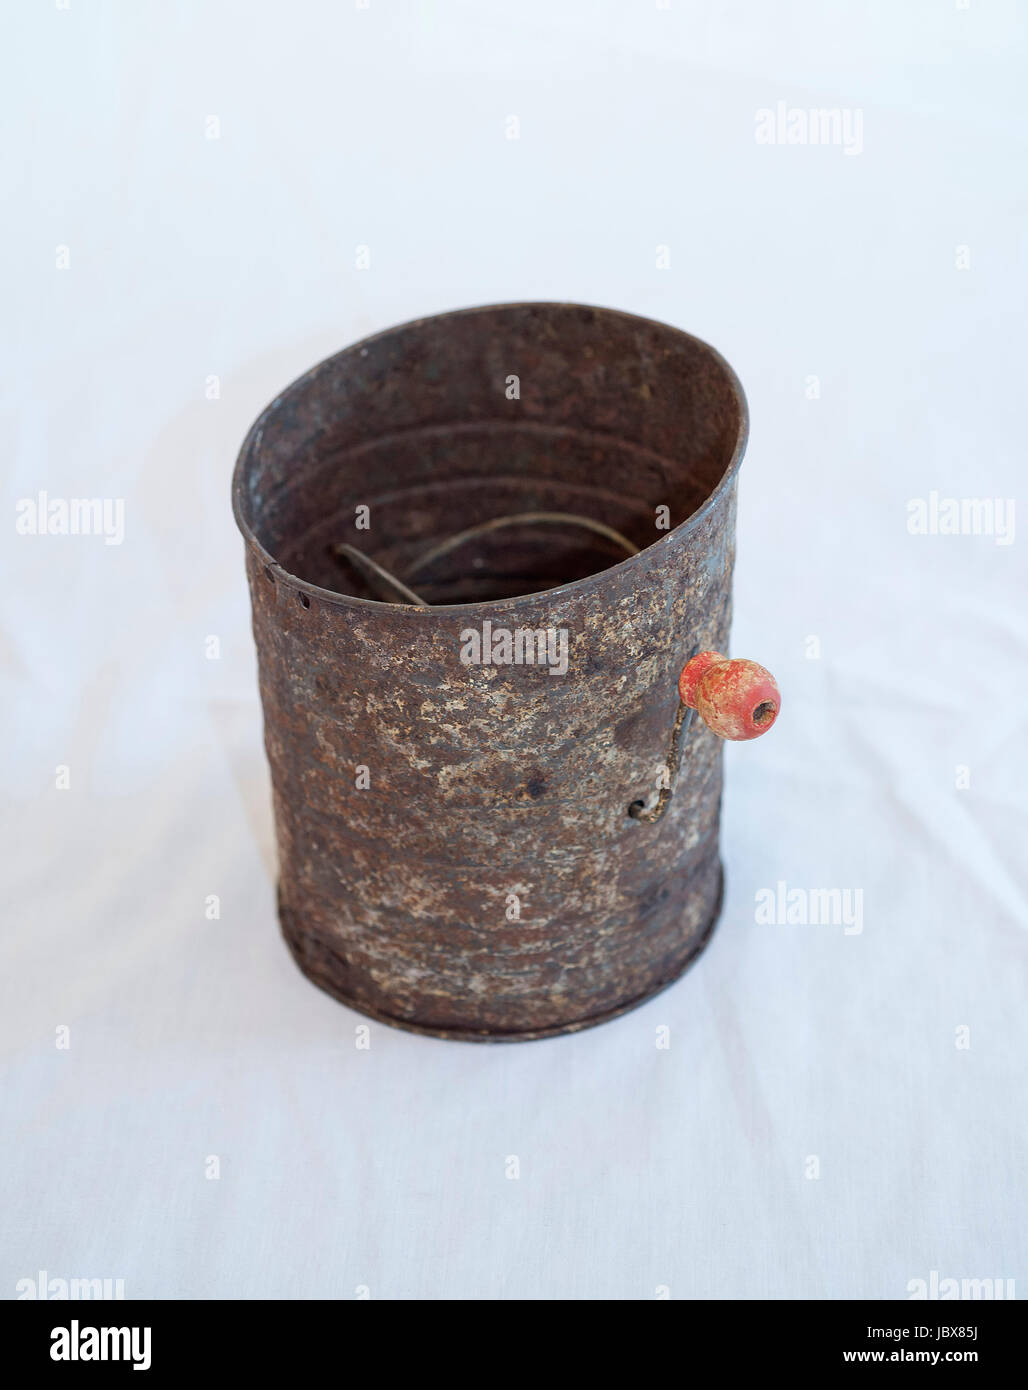 Vintage Bromwell flour sifter - Stock Image